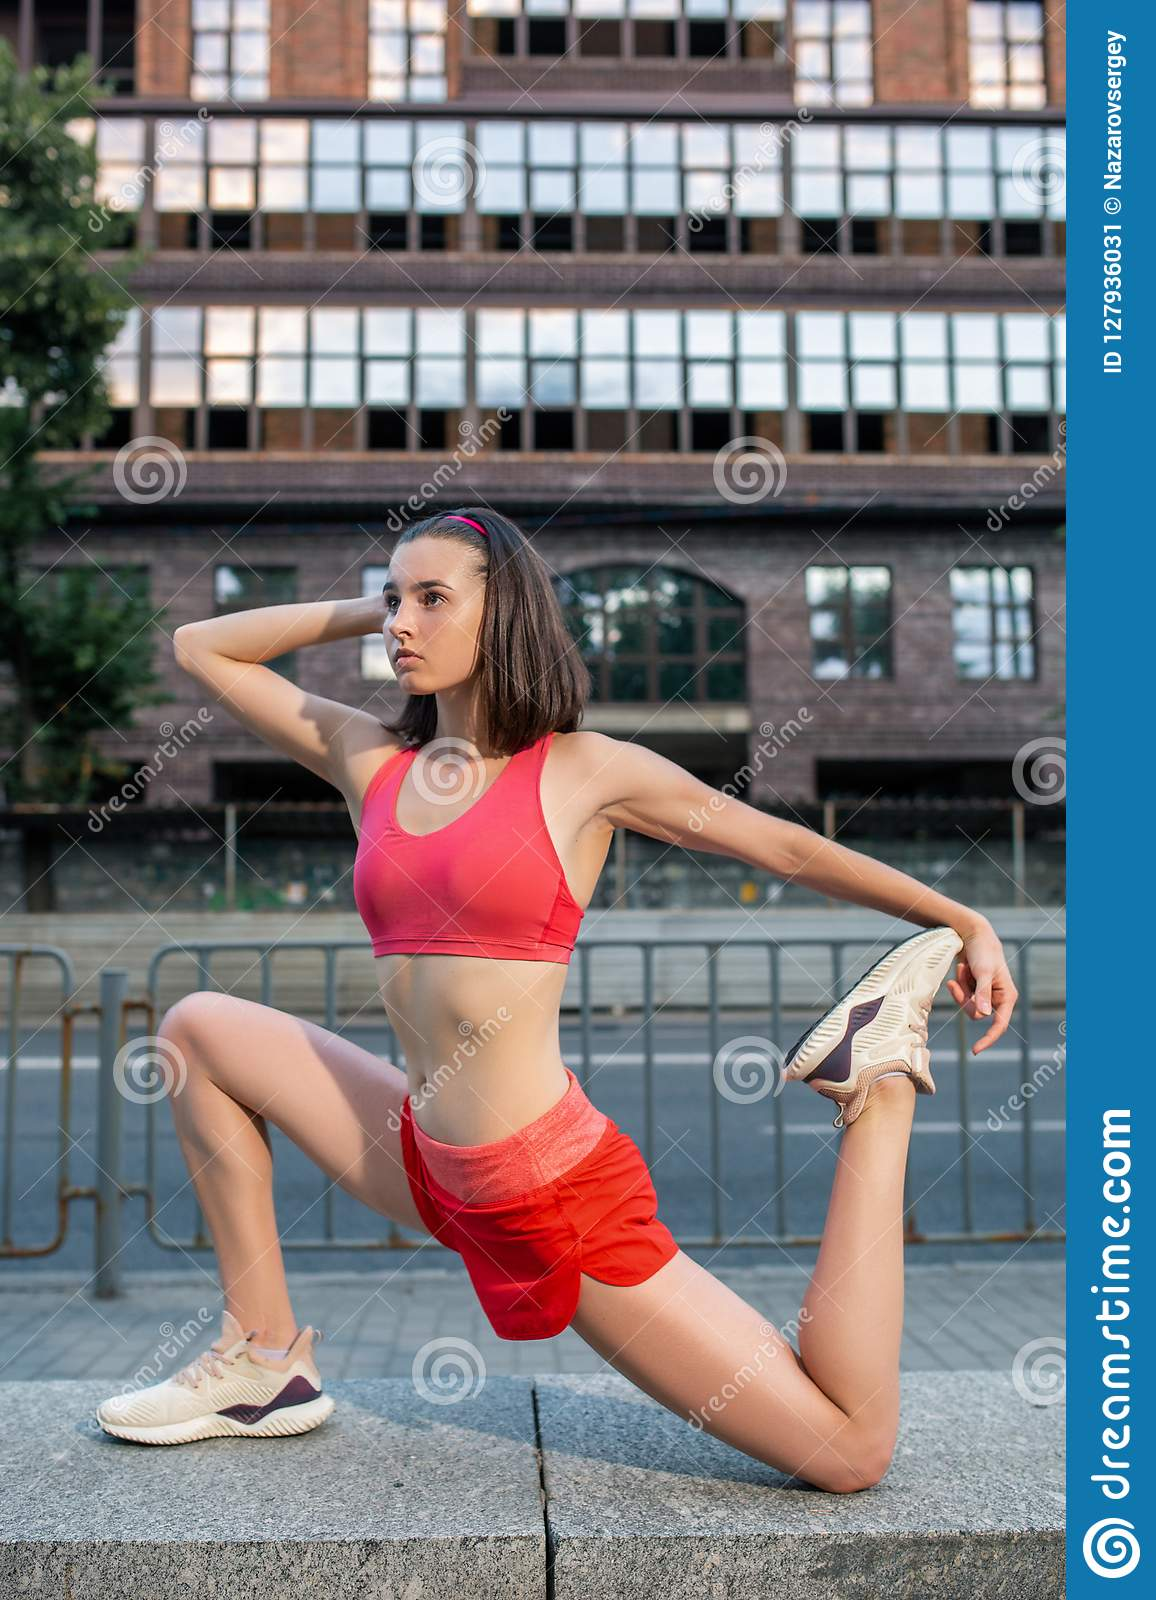 Sporty woman stretching and warming up legs before running urban fitness workout. Sport and healthy lifestyle concept.